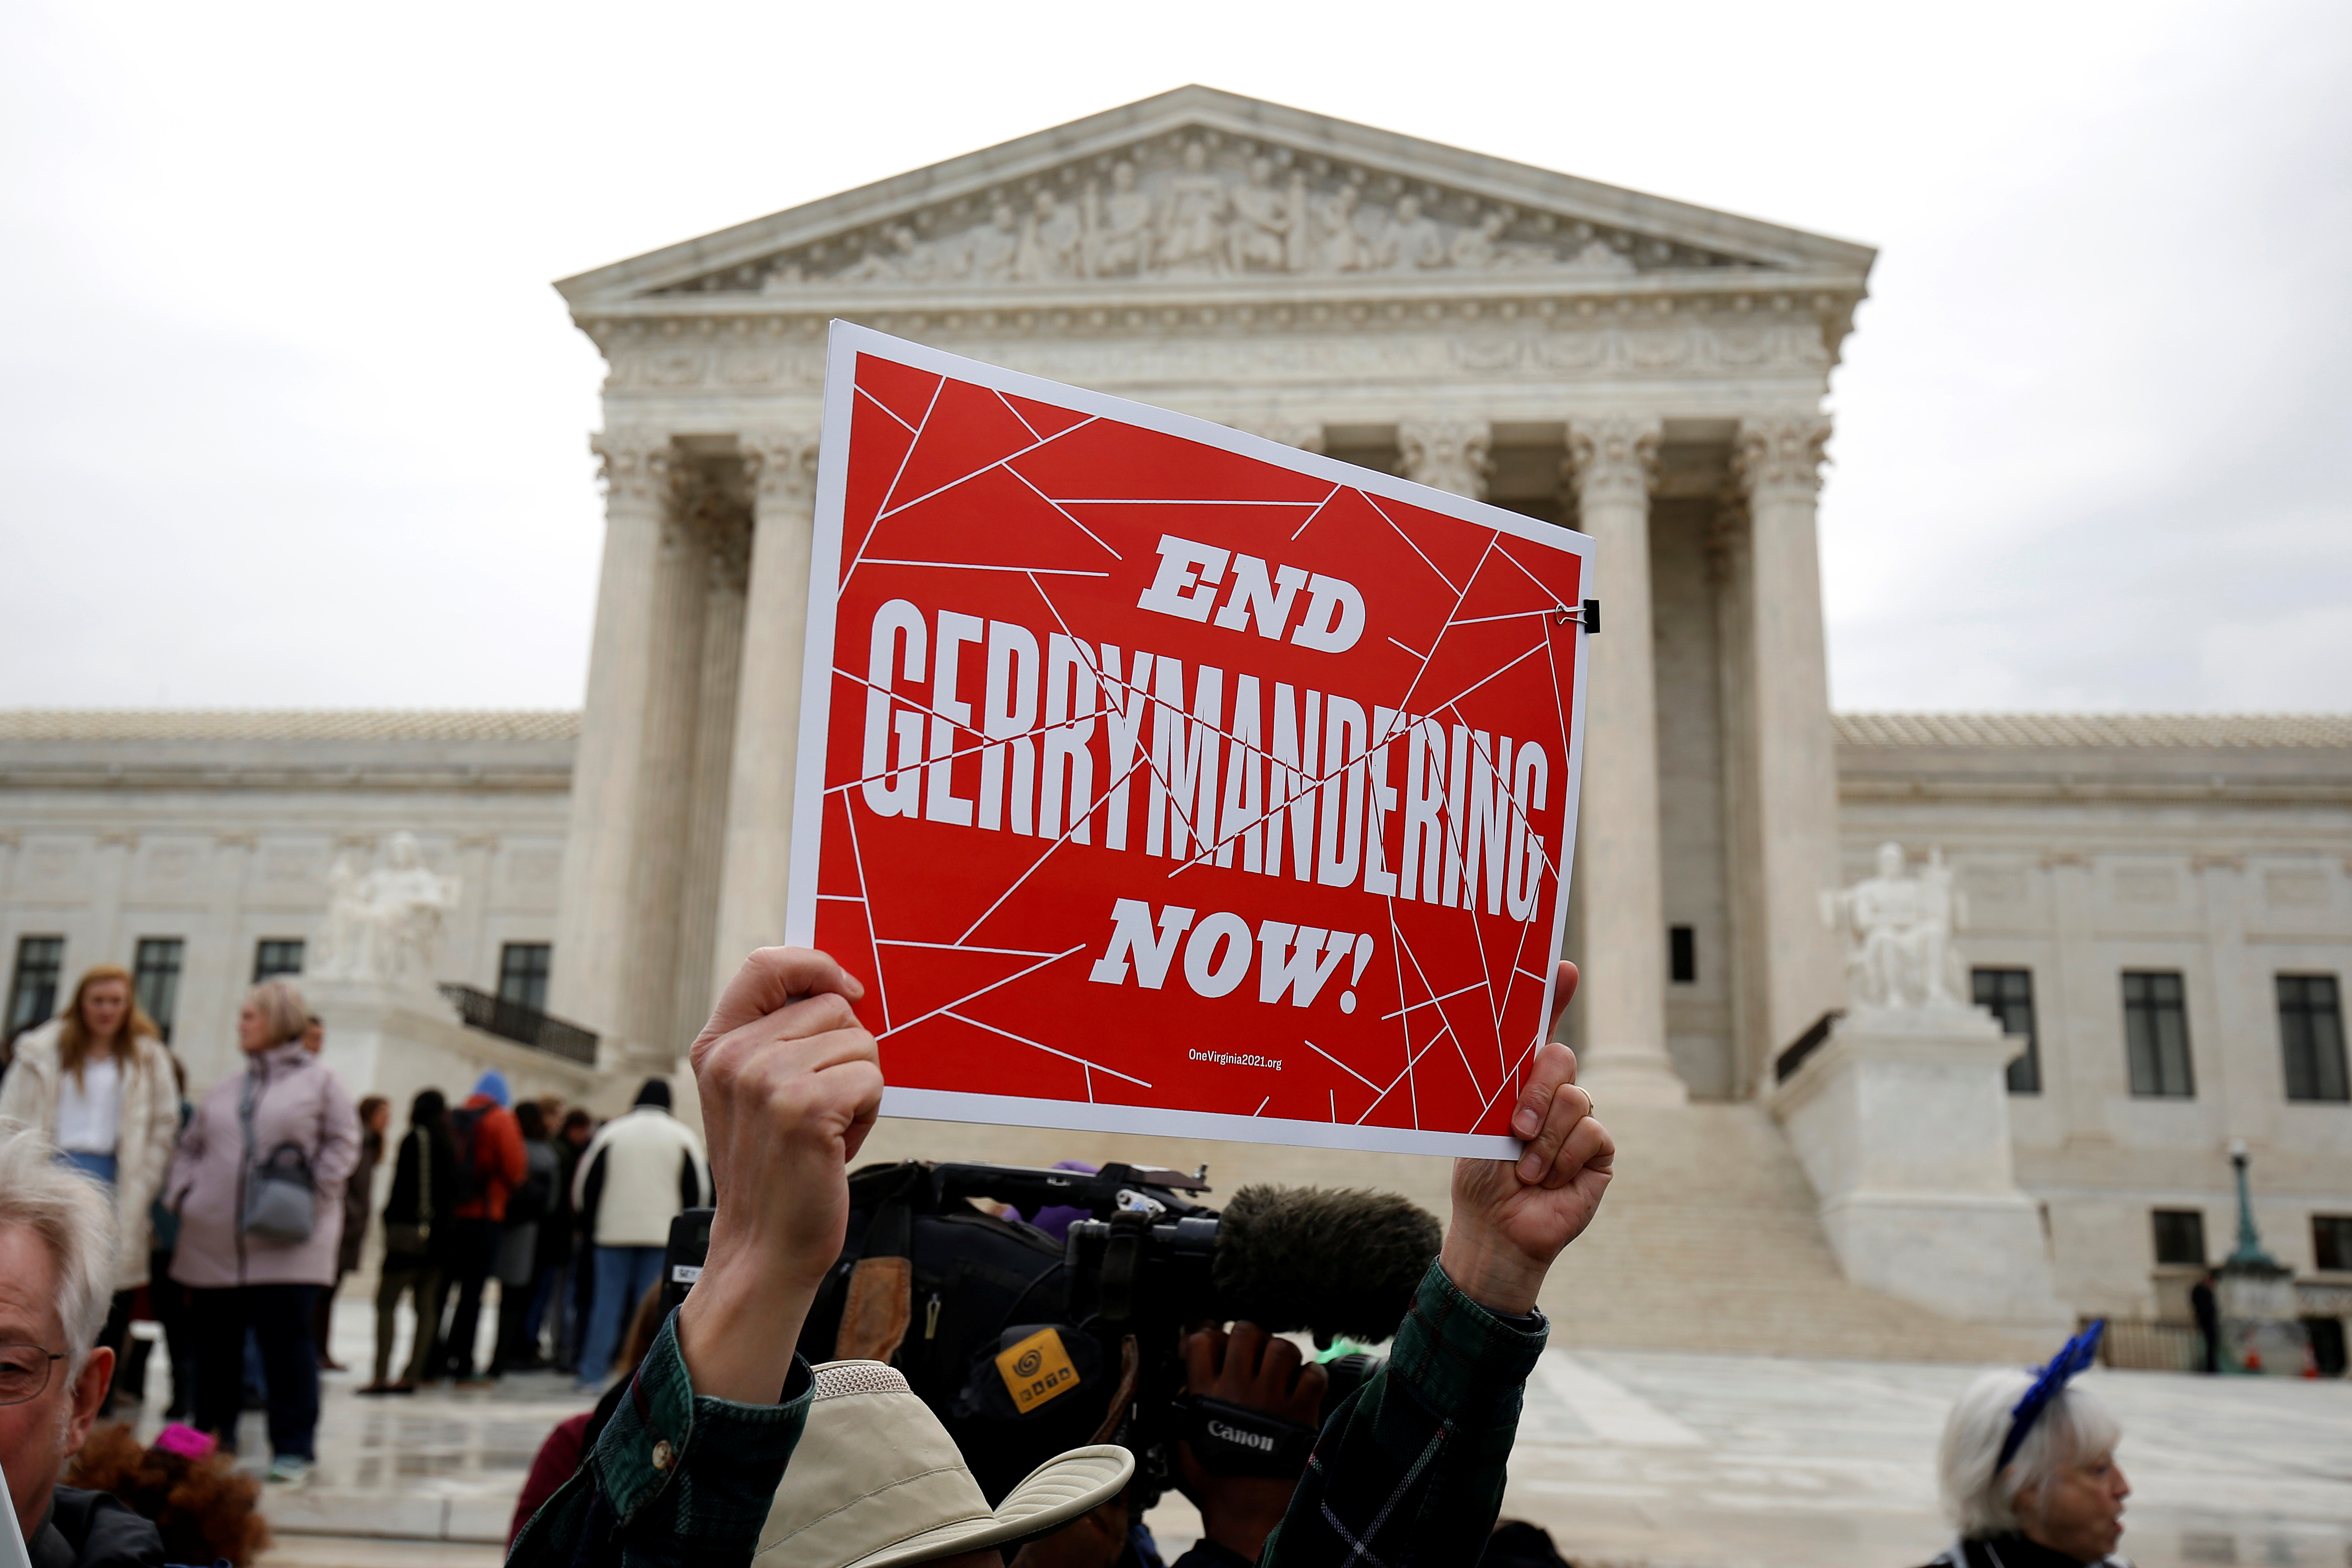 Demonstrators rally in front of the Supreme court before oral arguments on Benisek v. Lamone, a redistricting case on whether Democratic lawmakers in Maryland unlawfully drew a congressional district in a way that would prevent a Republican candidate from winning, in Washington, March 28, 2018.      REUTERS/Joshua Roberts